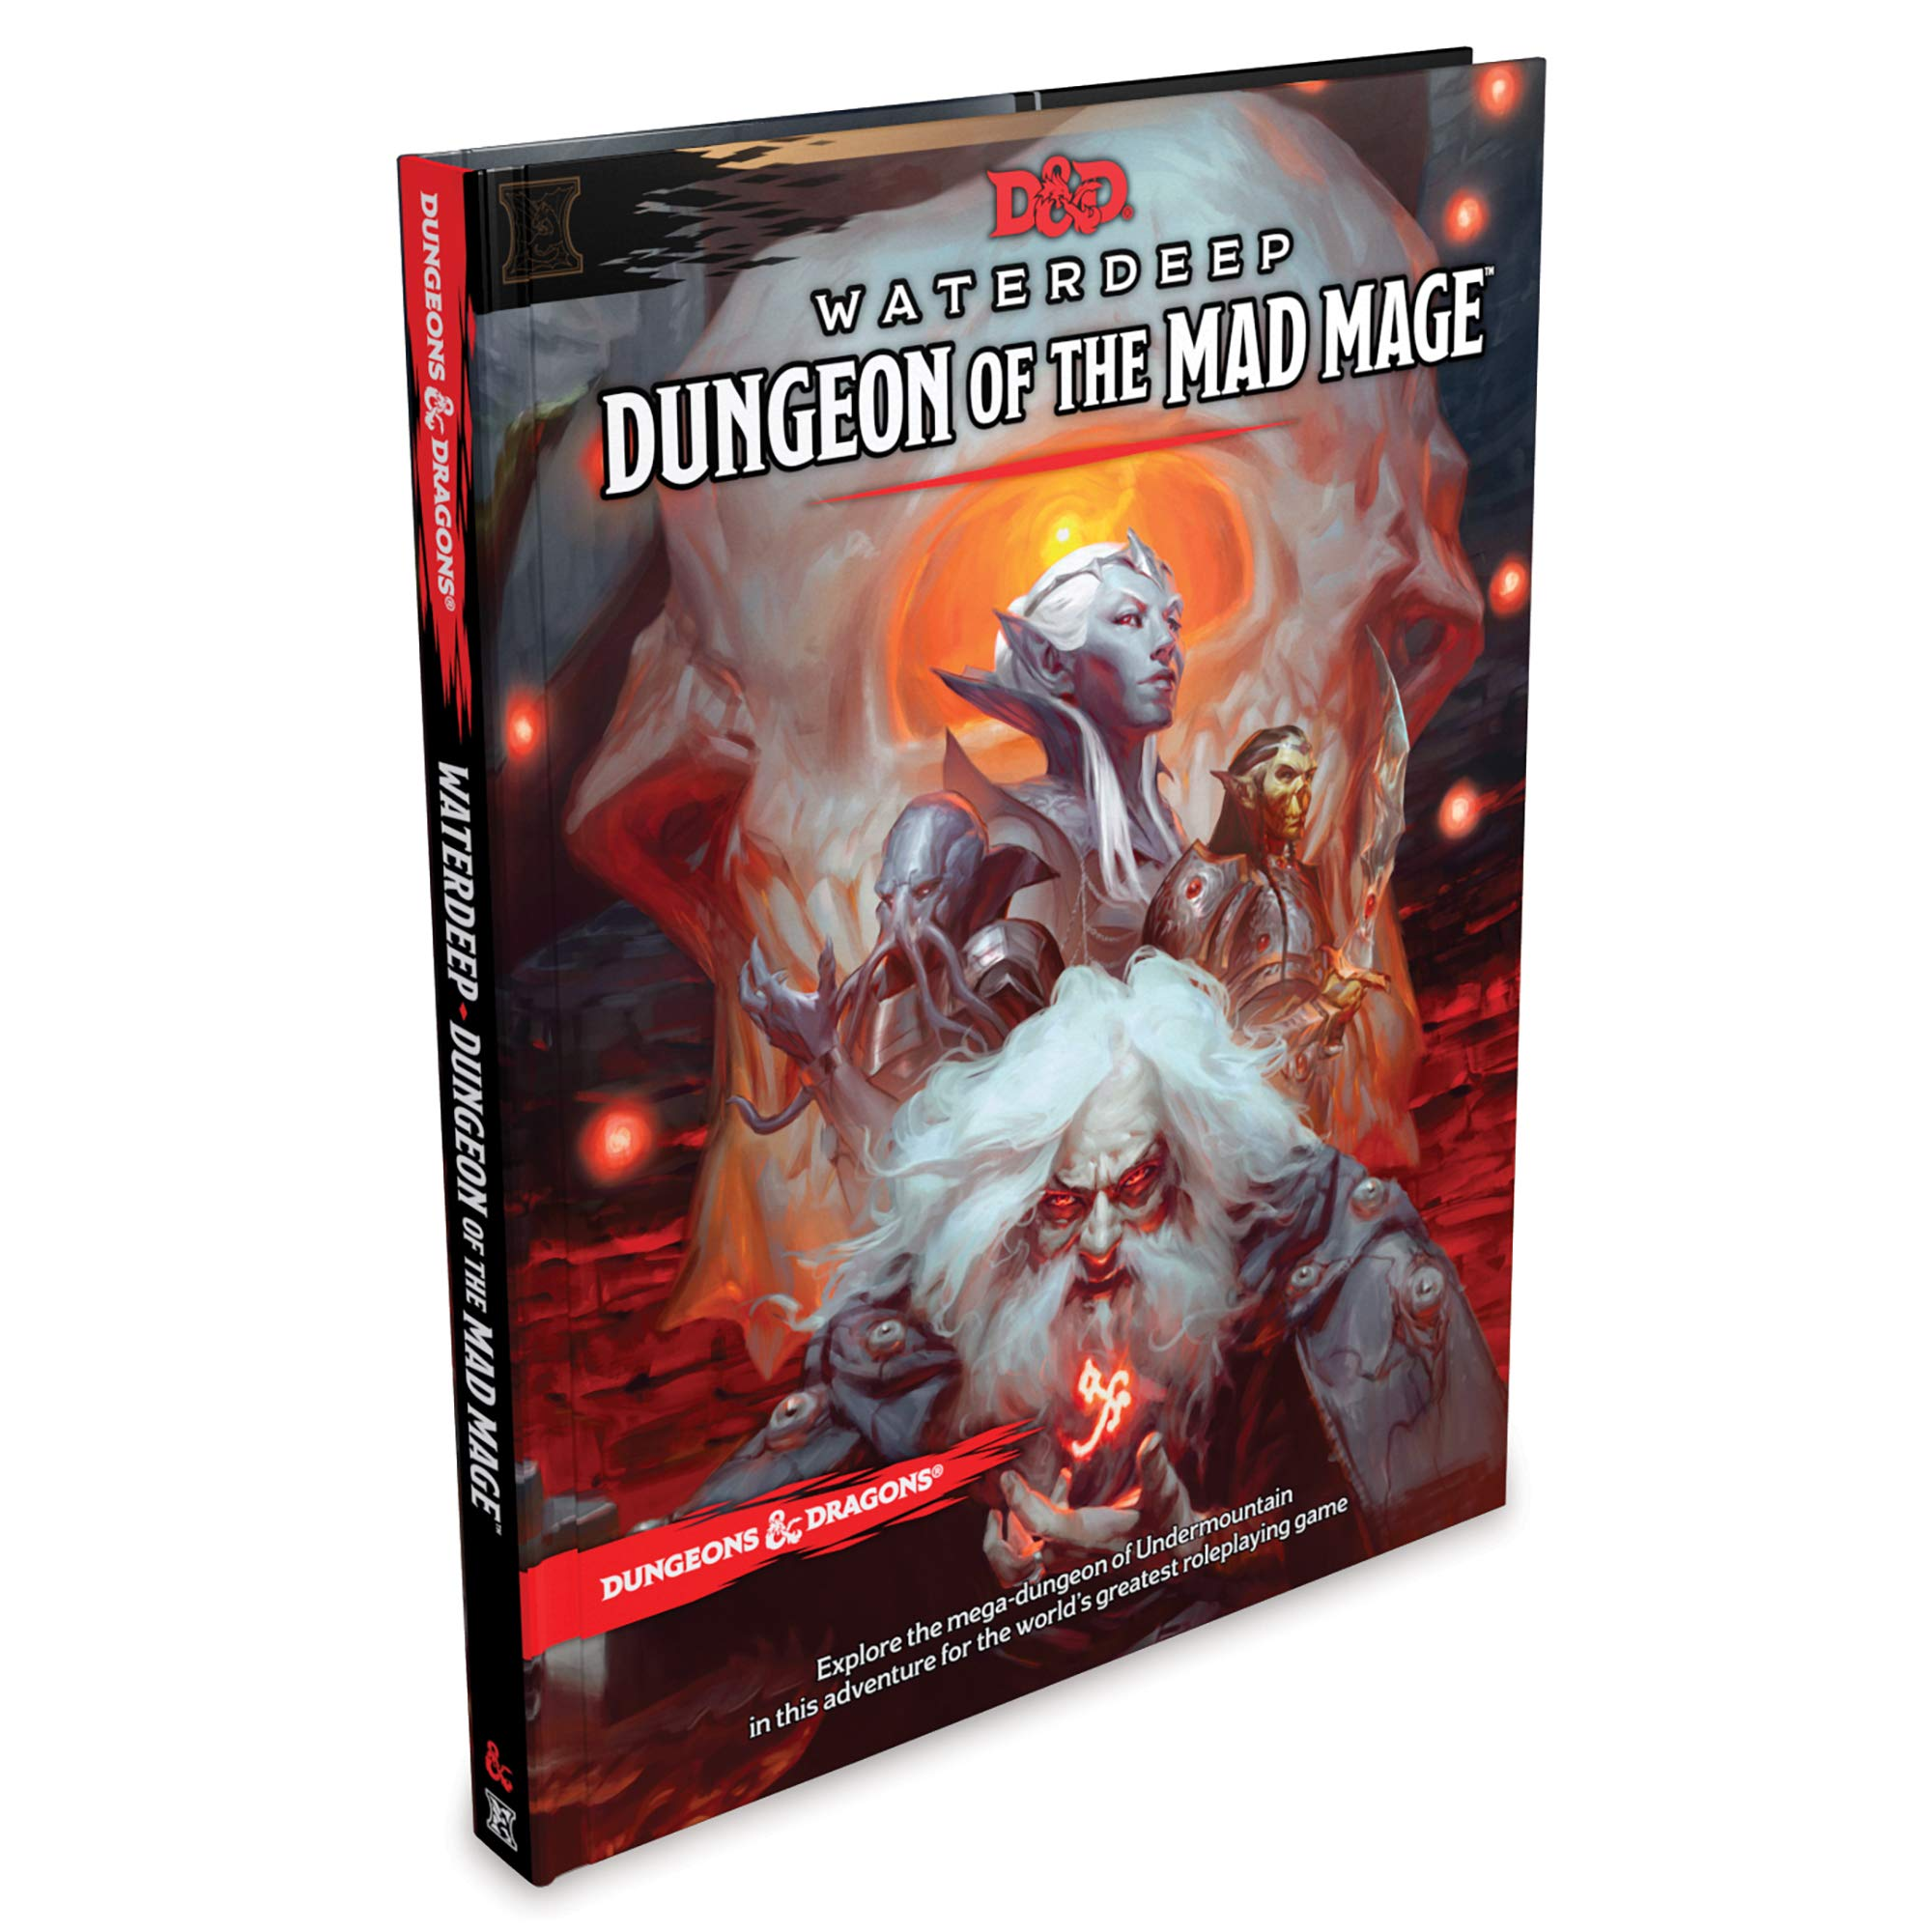 DUNGEON OF THE MAD MAGE DUNGEONS DRAGONS Dongeon and Dragon Waterdeep: Amazon.es: WIZARDS RPG TEAM: Libros en idiomas extranjeros